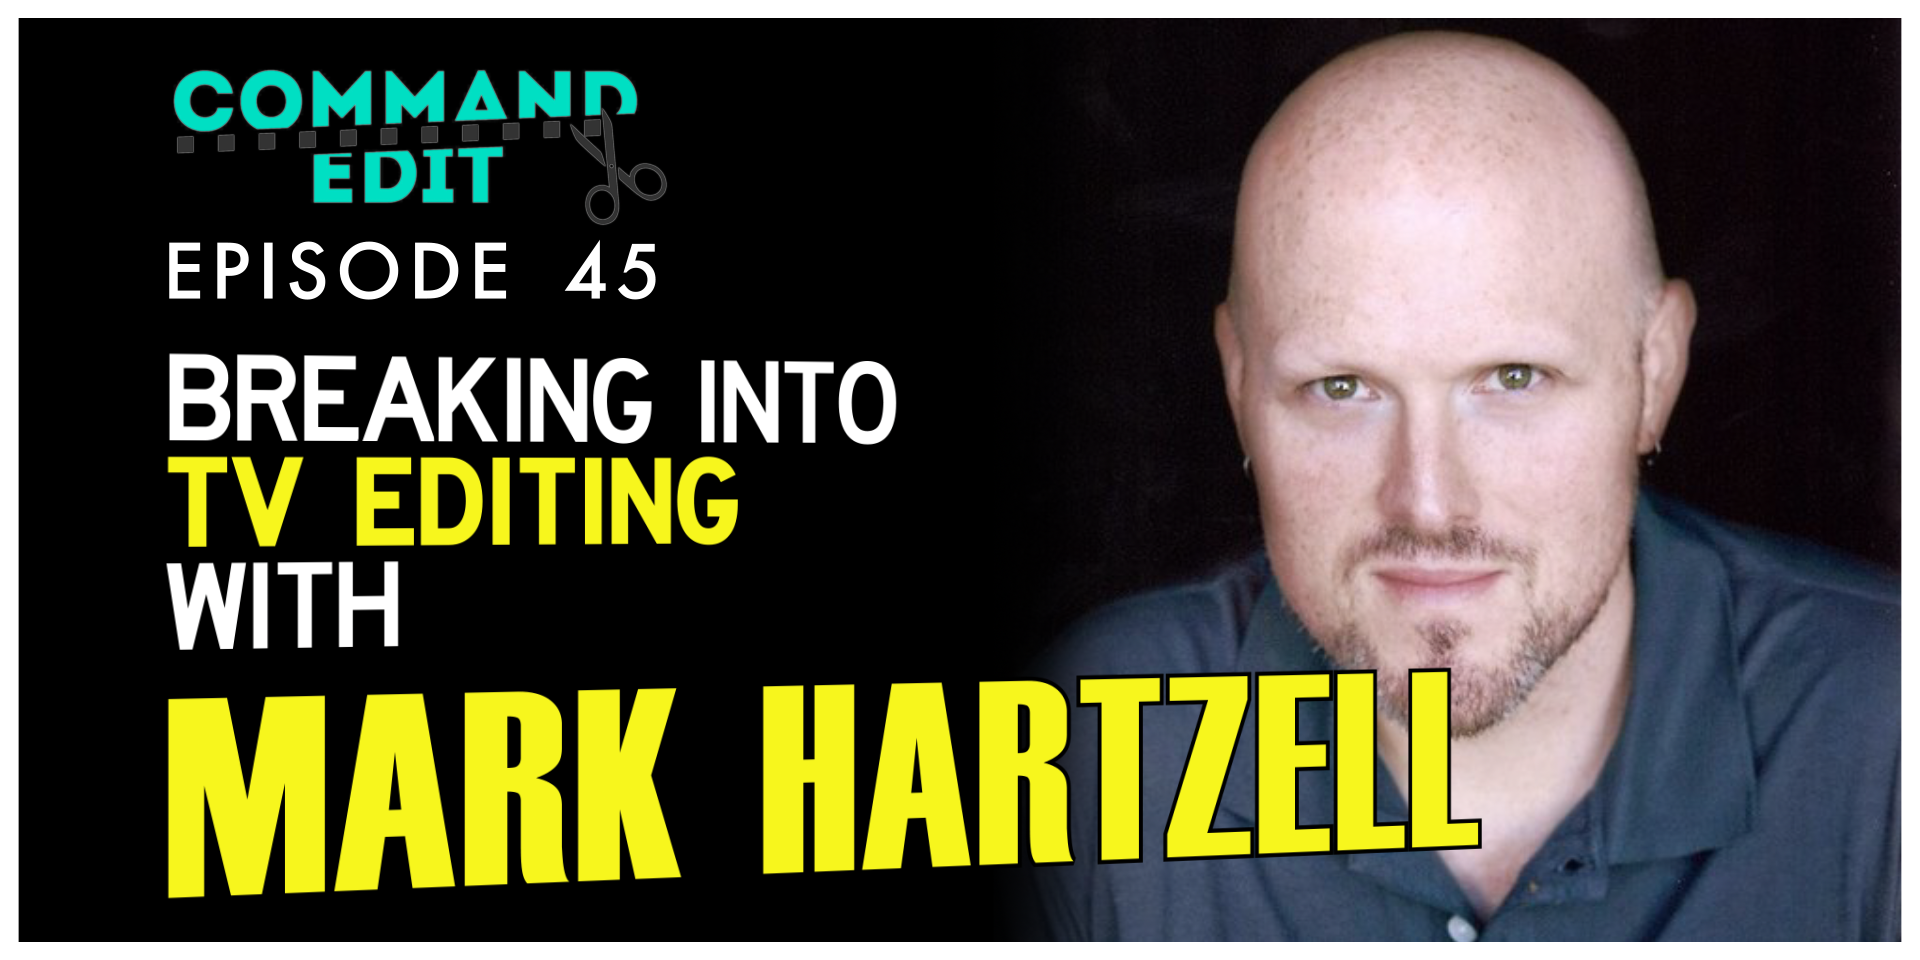 Command Edit Podcast Episode 45 with Mark Hartzell interview tv editor for True Blood and Agent Carter